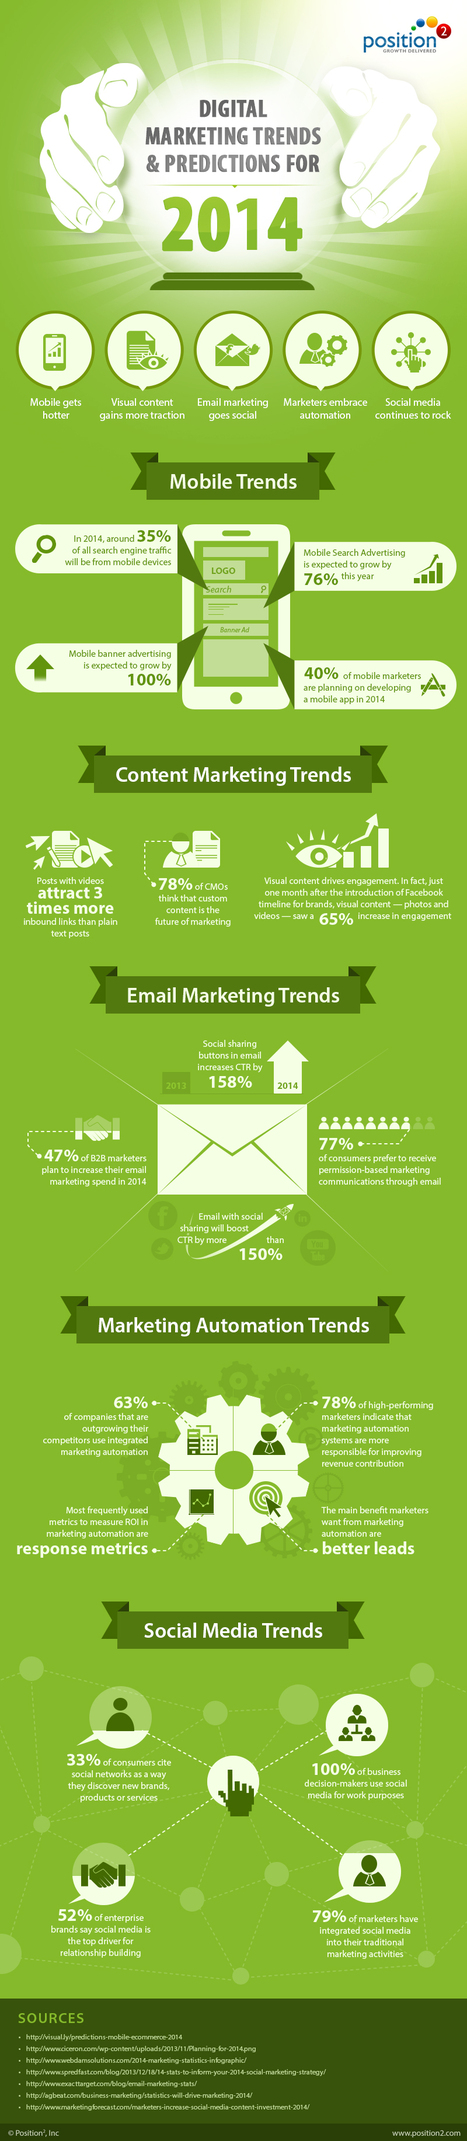 [Infographic] Digital Marketing Trends & Predictions for 2014 | Position² | #TheMarketingAutomationAlert | Creative | Scoop.it